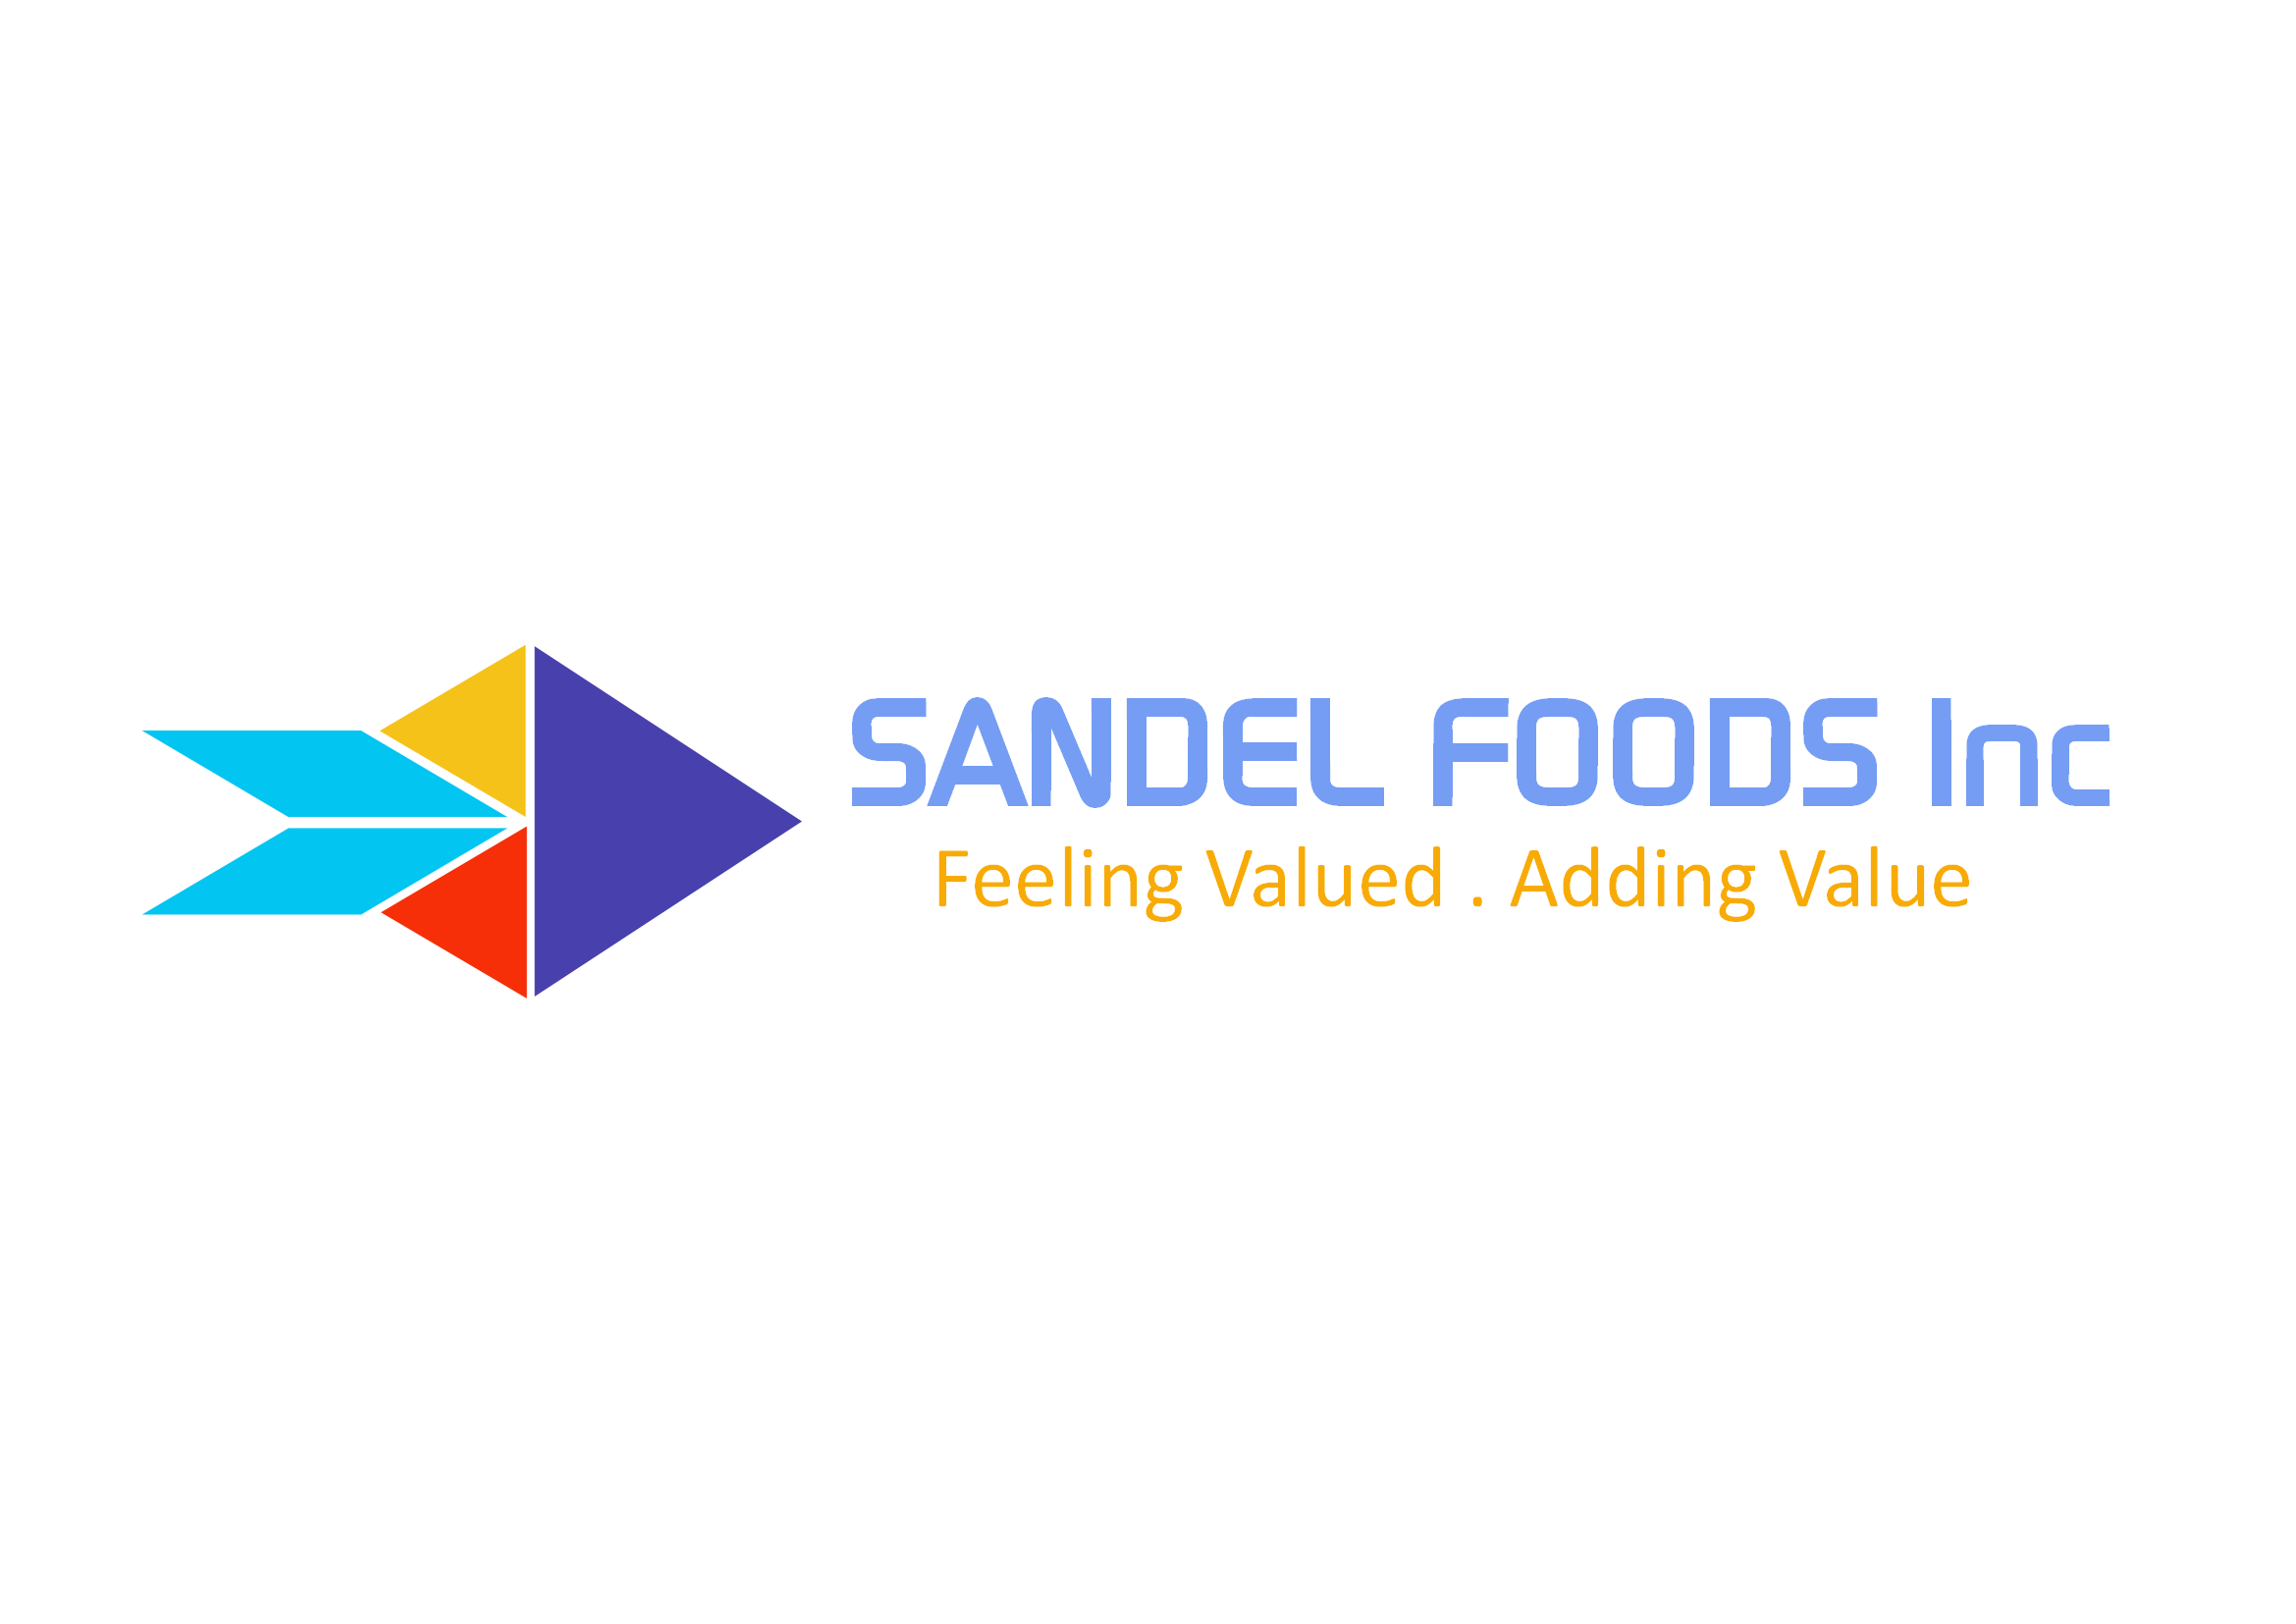 Logo Design by Heri Susanto - Entry No. 15 in the Logo Design Contest Fun Logo Design for Sandel Foods Inc.